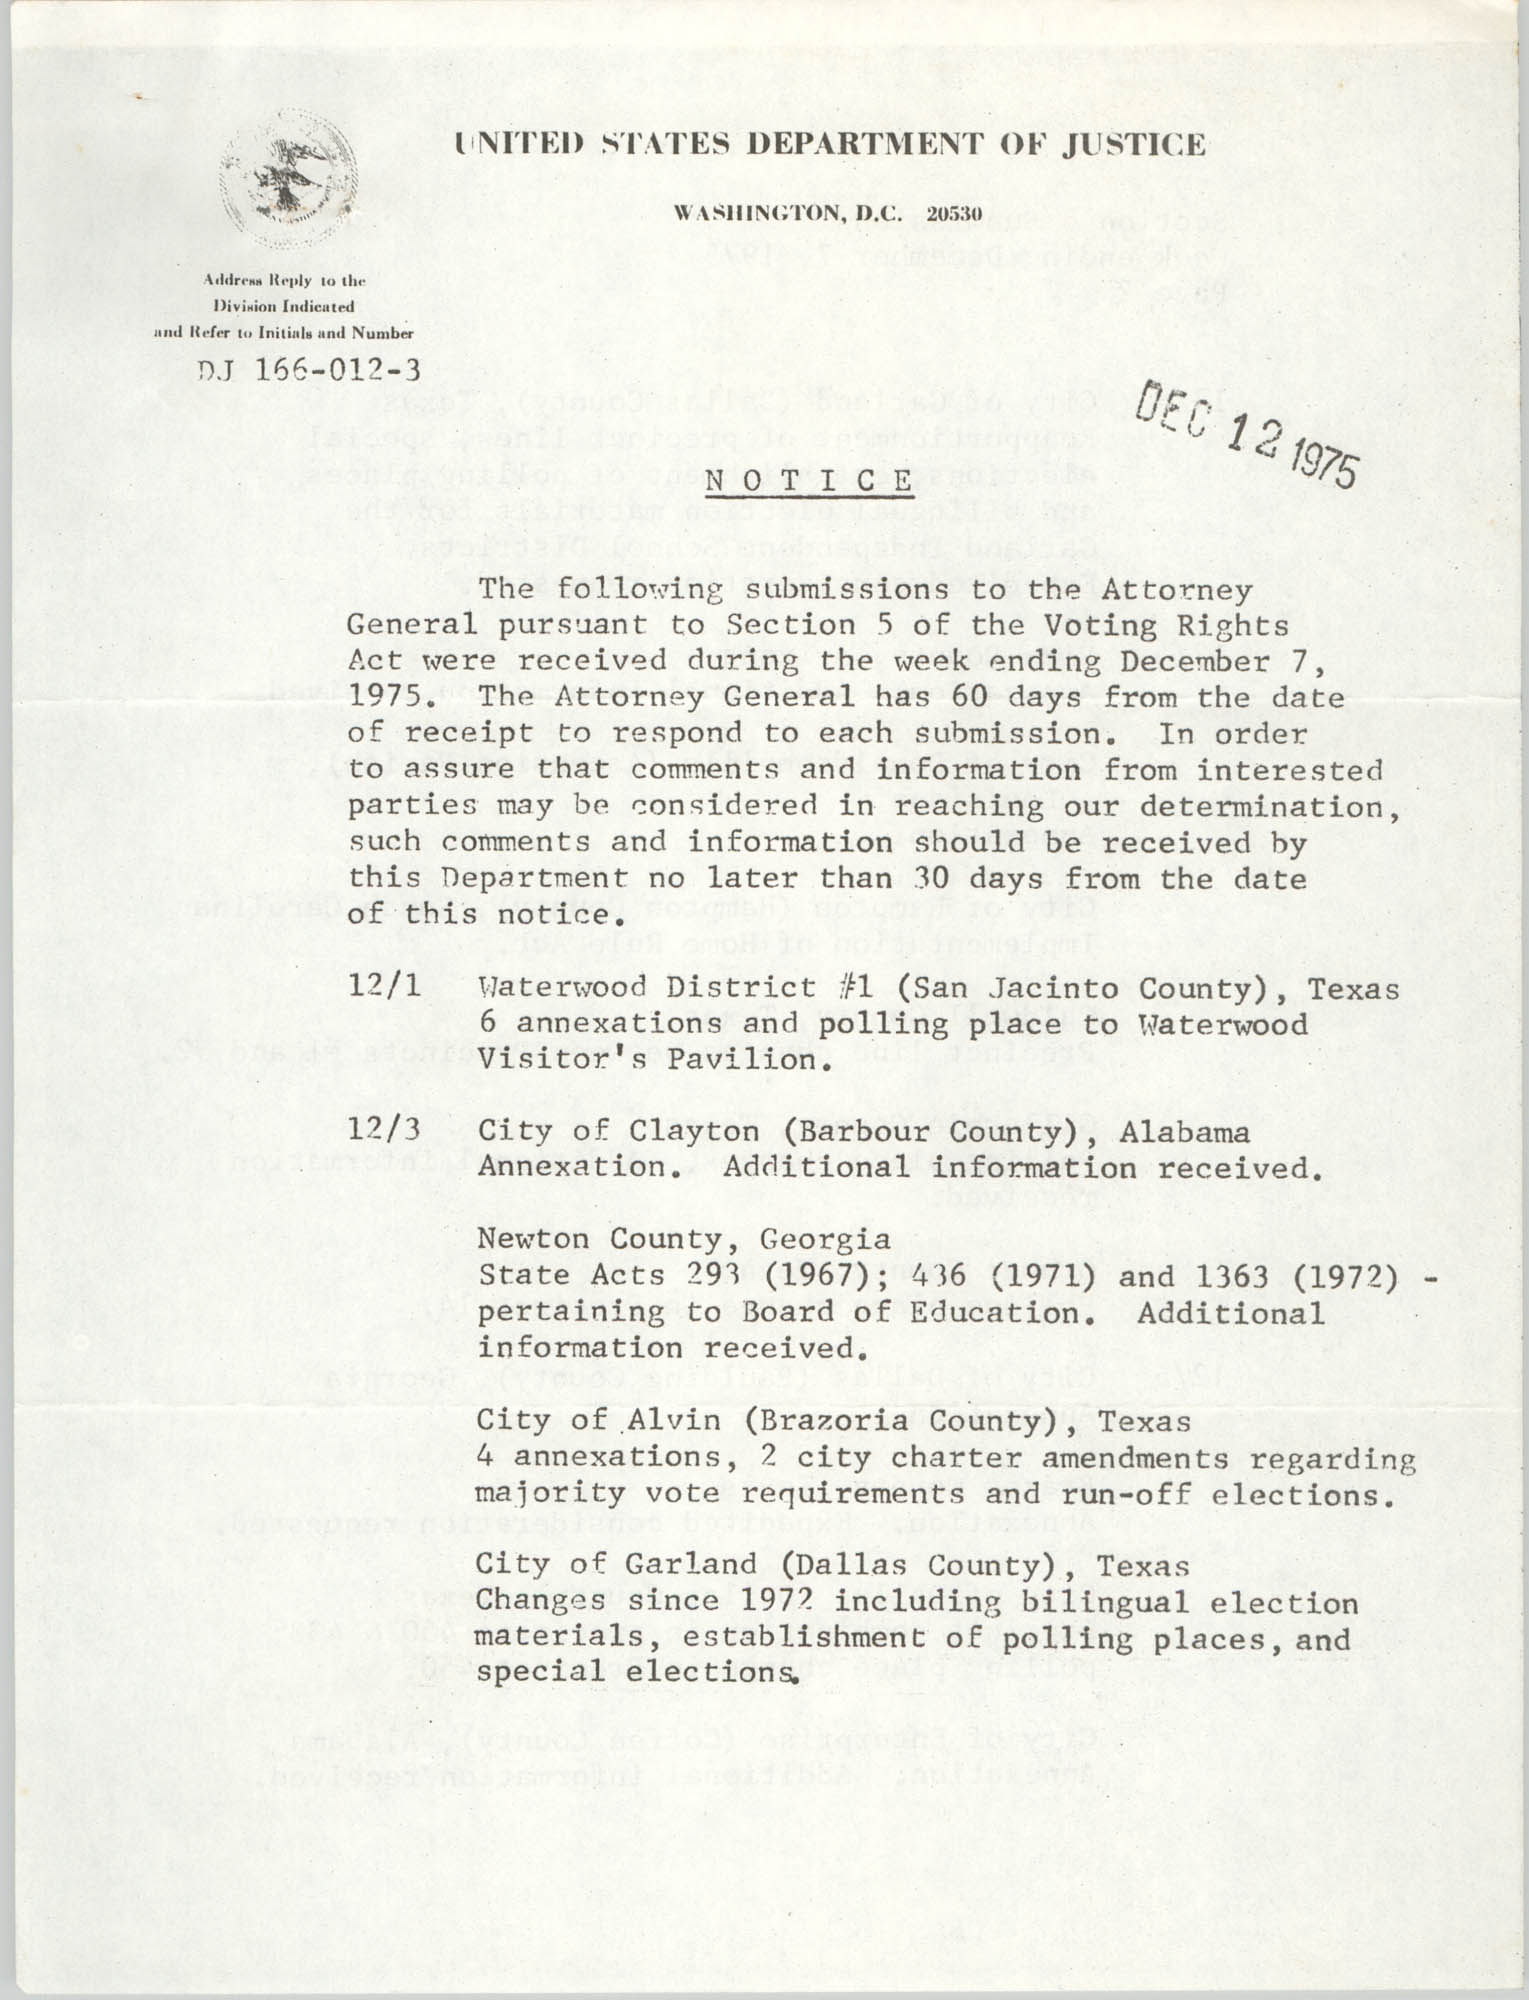 United States Department of Justice Notice, December 12, 1975